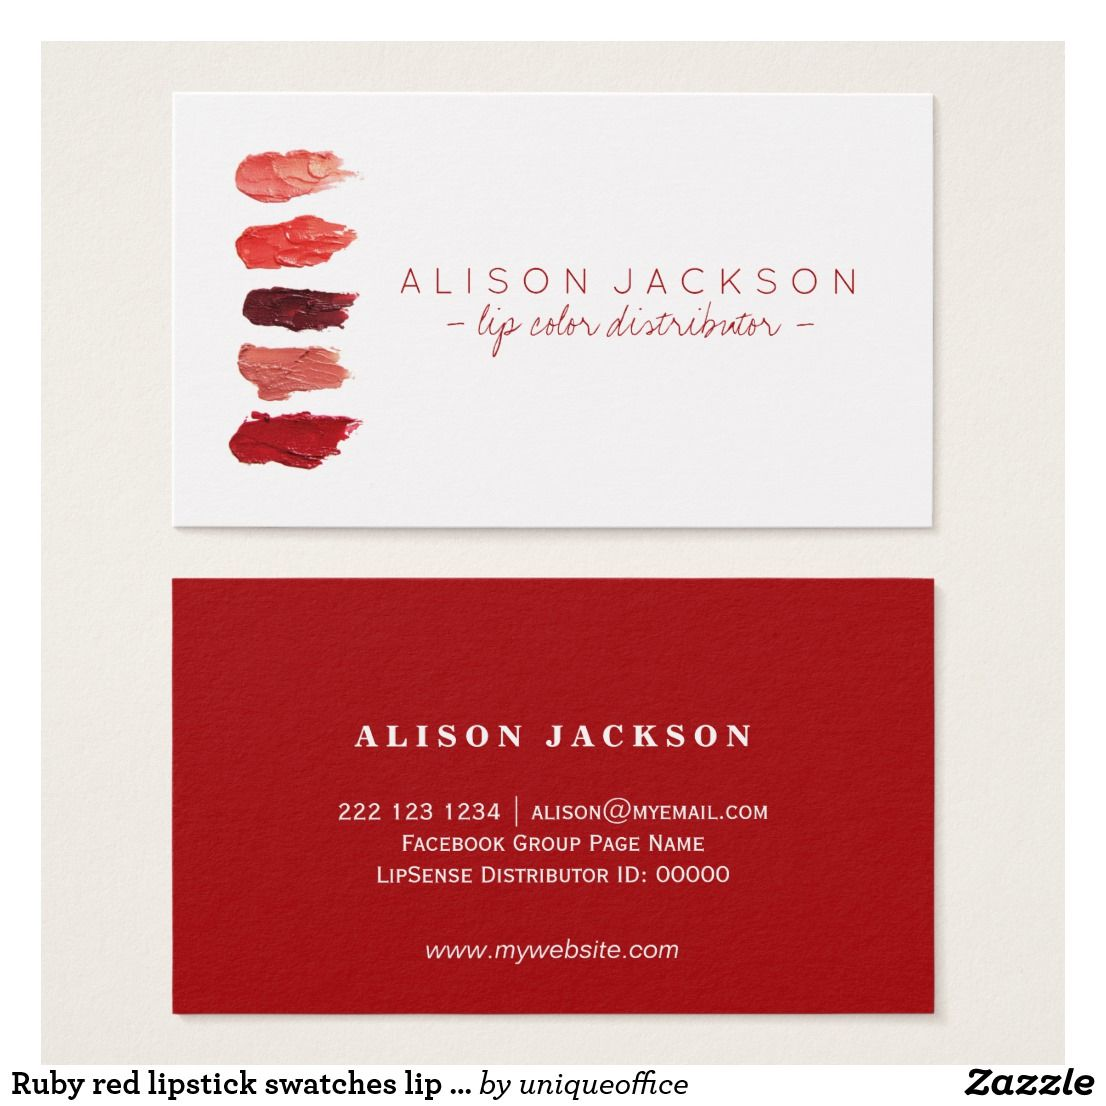 Ruby Red Lipstick Swatches Lip Color Distributor Business Card